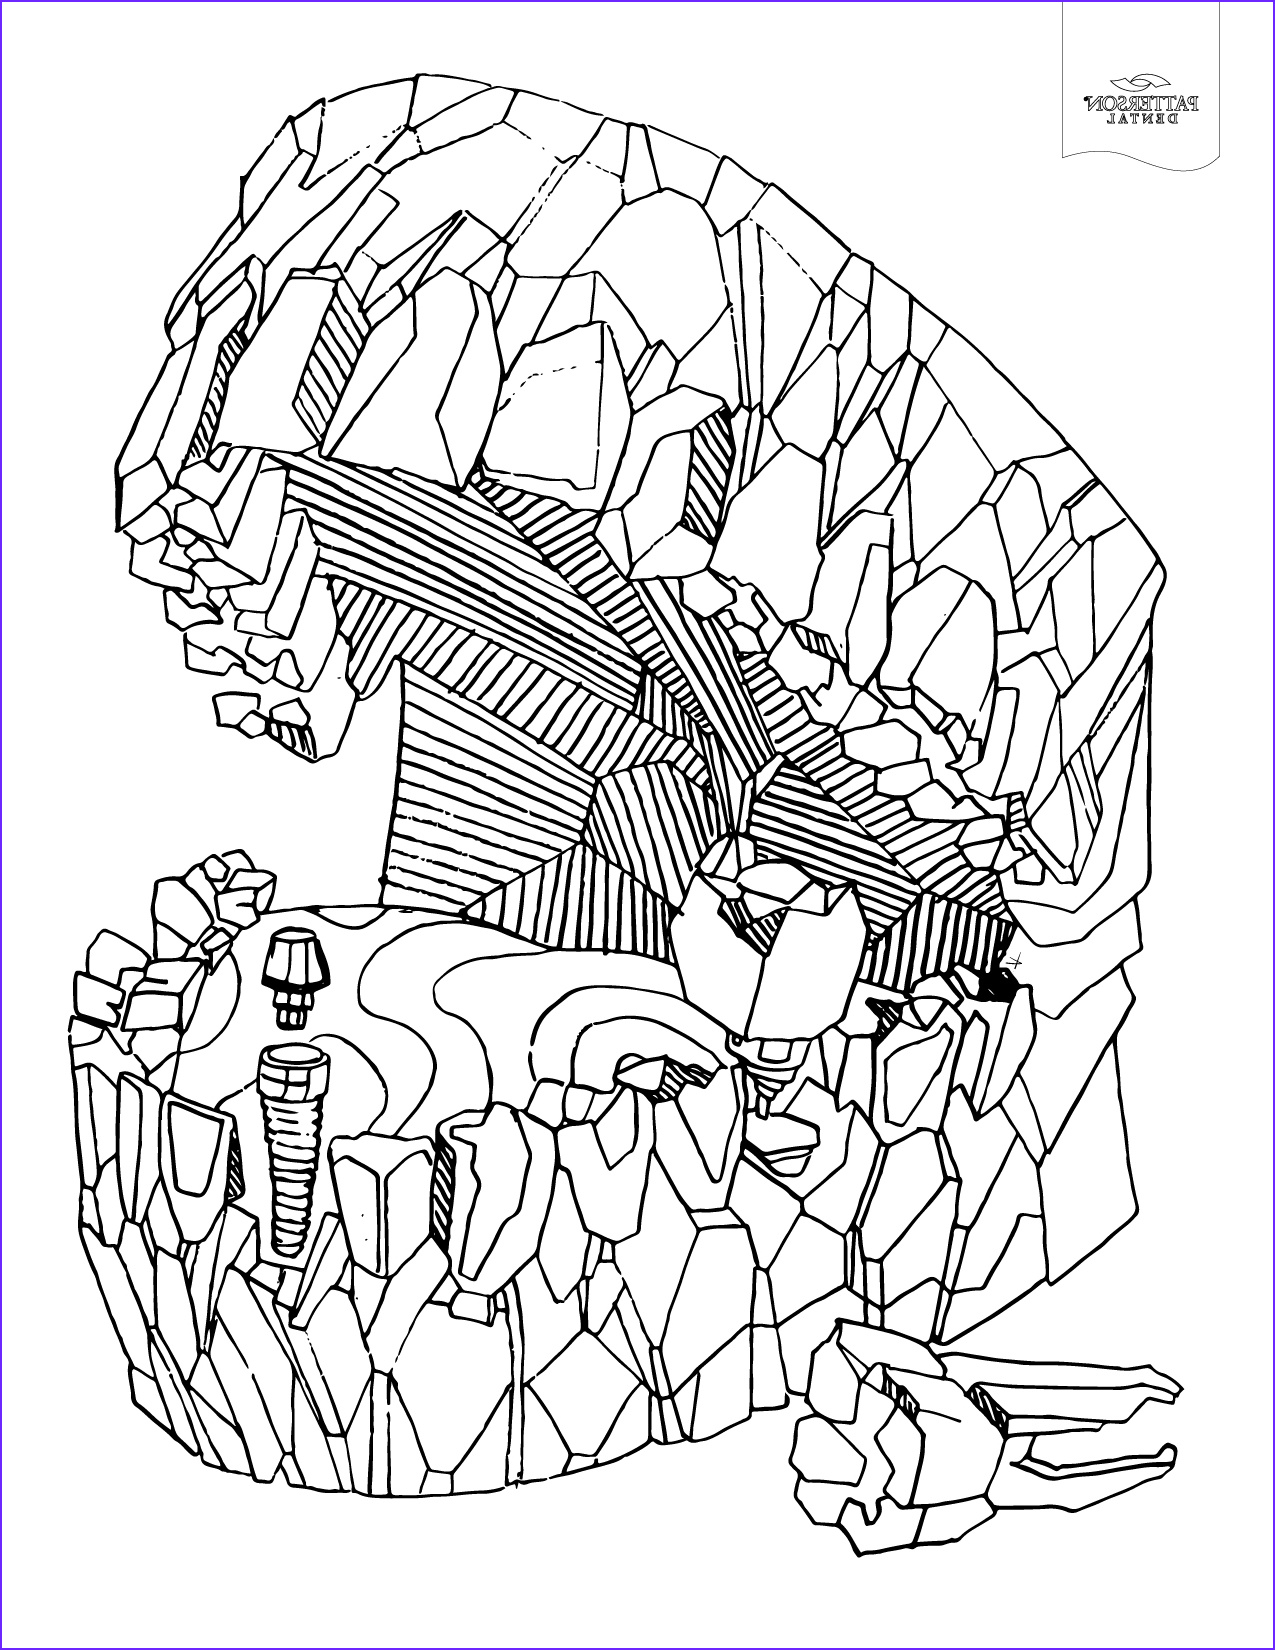 Free Printable Adult Coloring Pages Luxury Photos 10 toothy Adult Coloring Pages [printable] F the Cusp